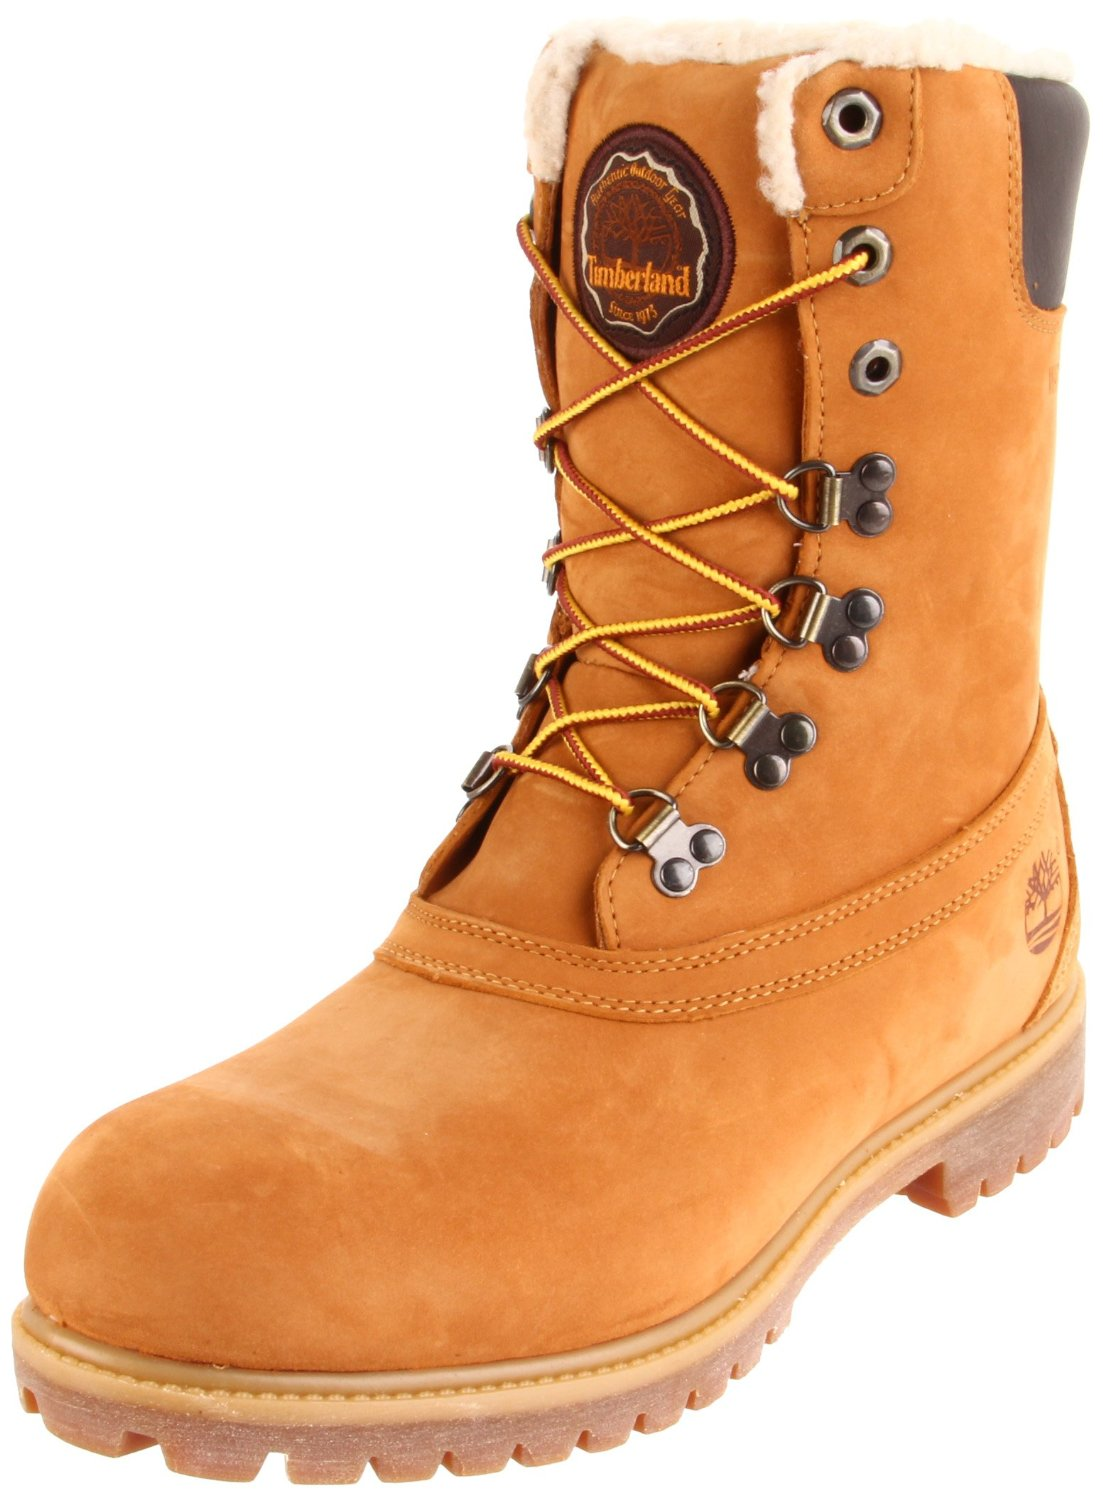 Timberland Boots For Men 2012 Timberland Mens Winter...